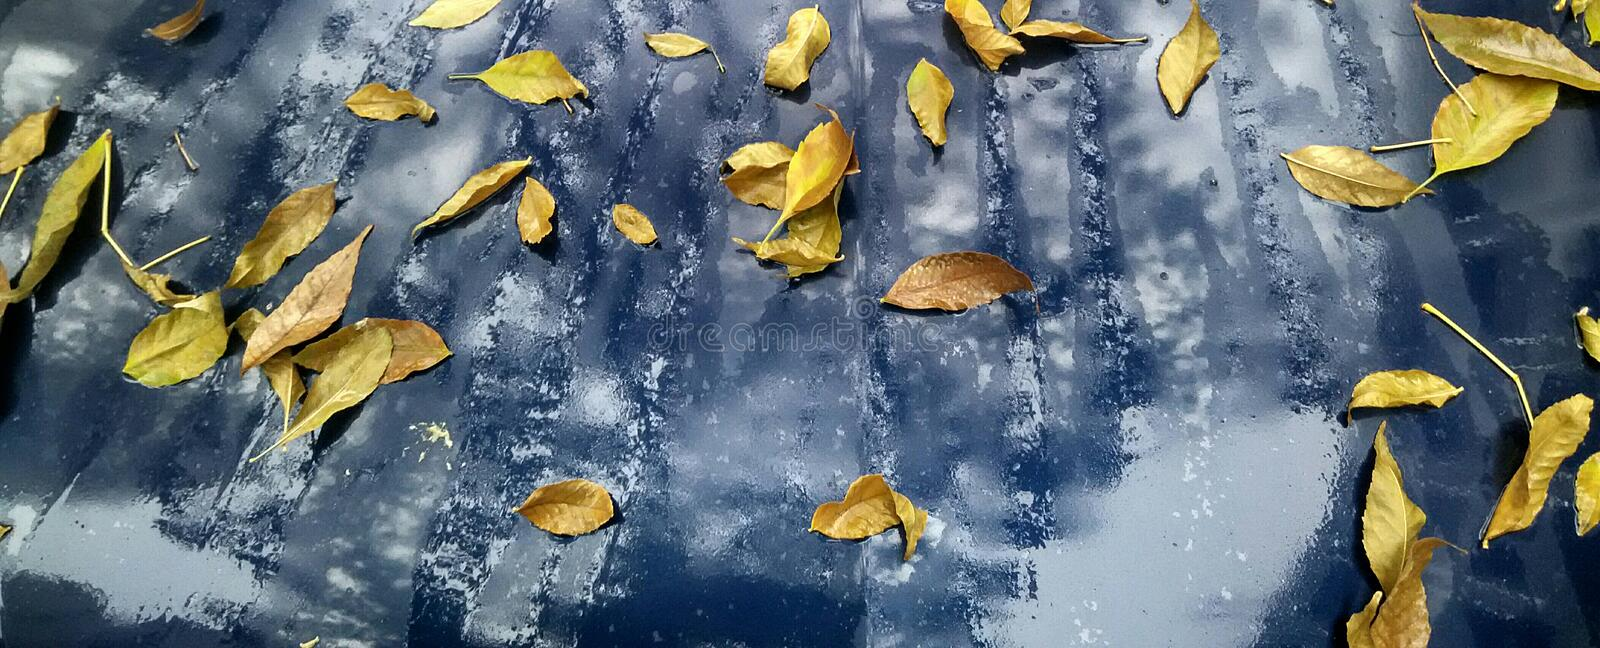 Download Autumn Leaves stock image. Image of leaves, rain, background - 83704879